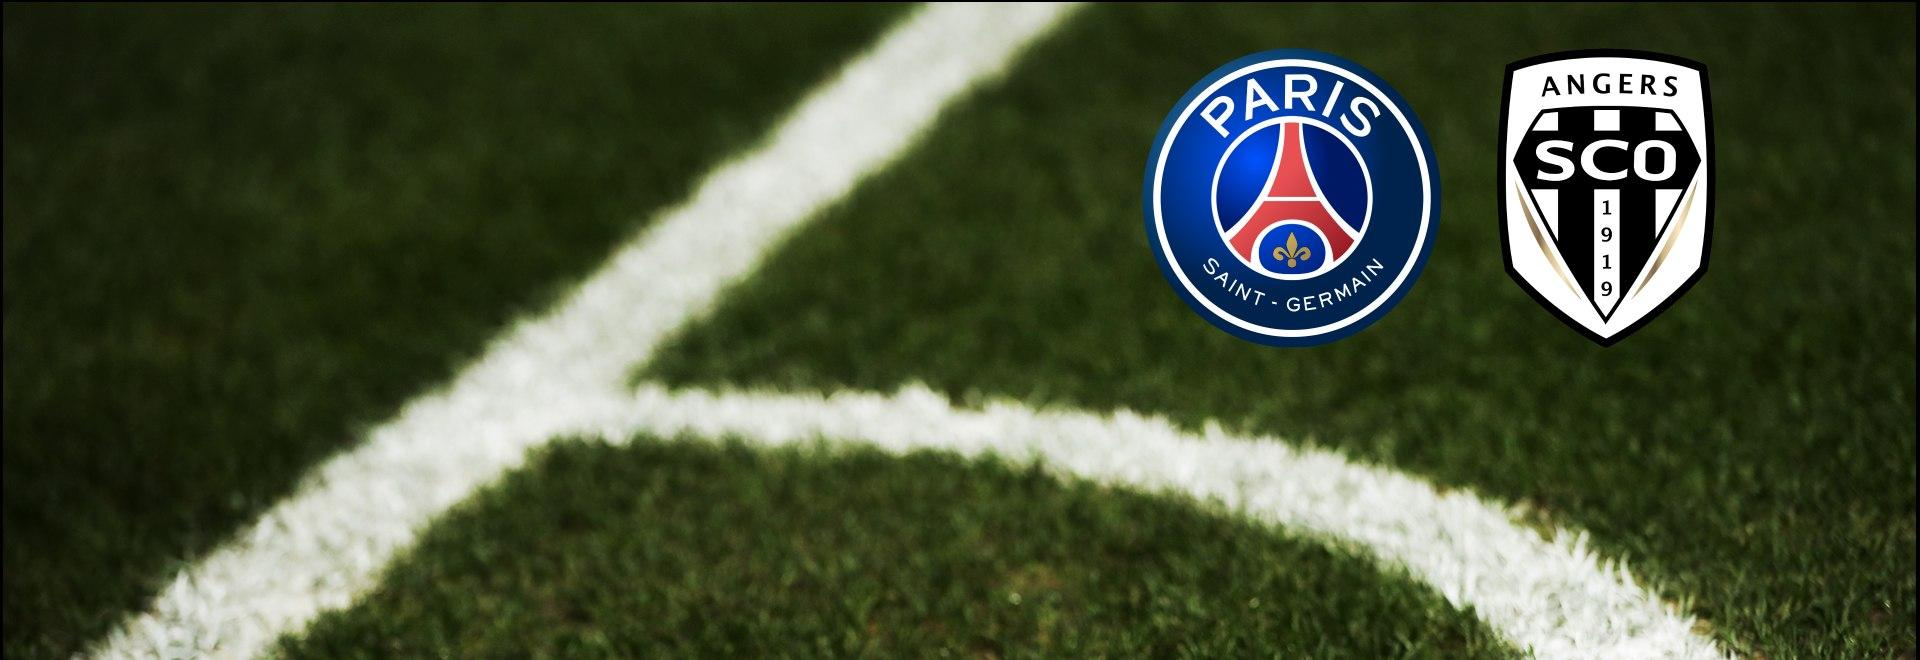 PSG - Angers. 6a g.